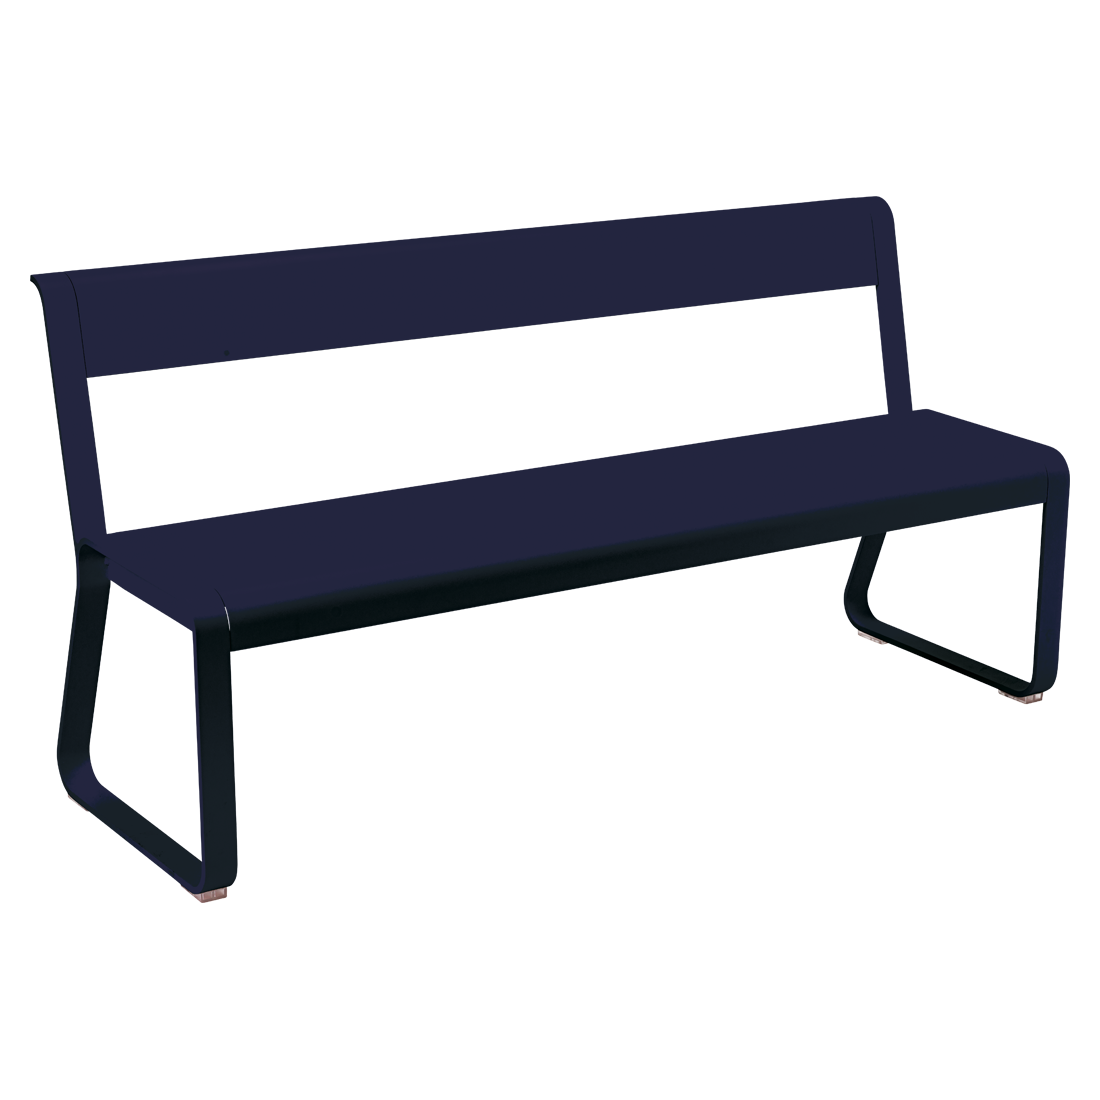 FERMOB Bellevie Bench with Backrest